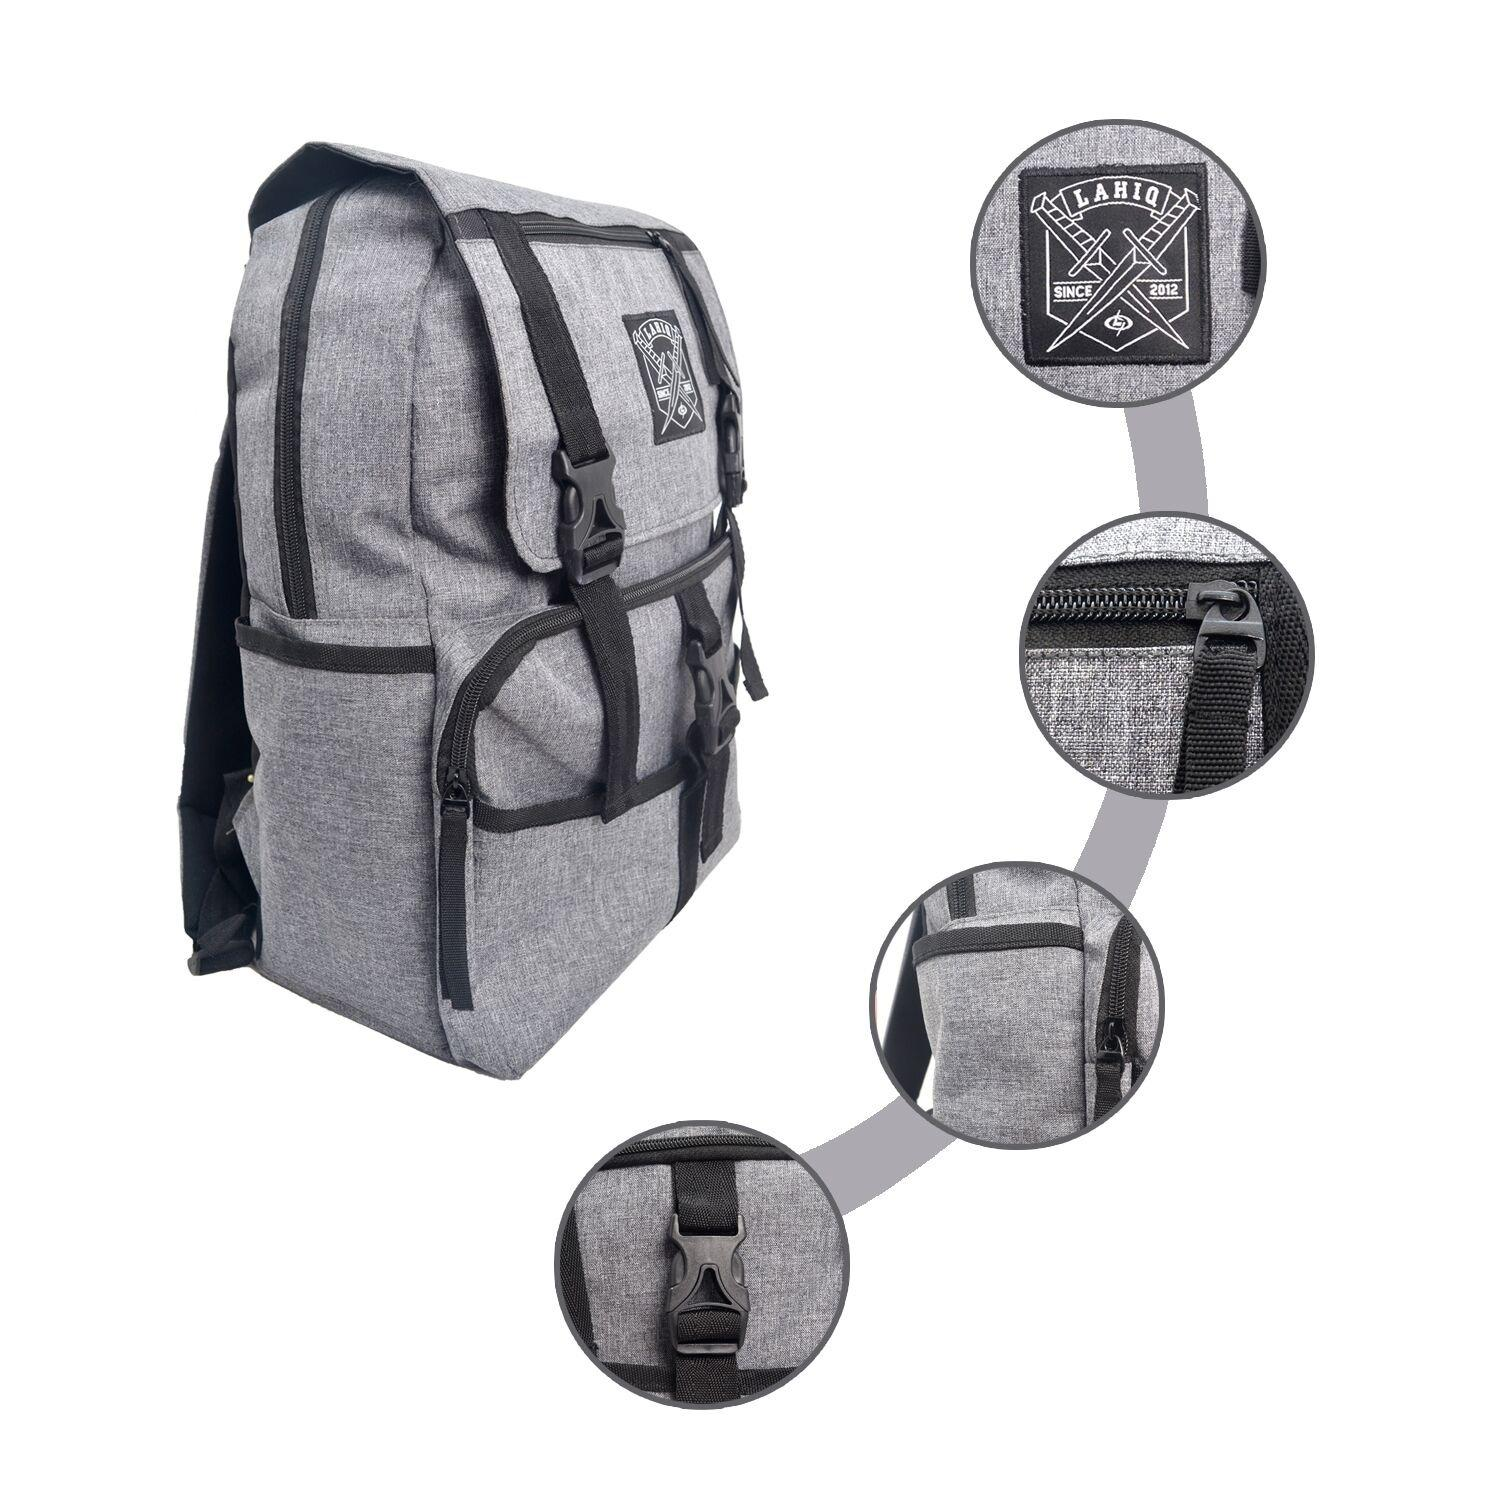 Tas ransel model baru17 Inchi Style Korea 901-17 Material Kanvas - Grey